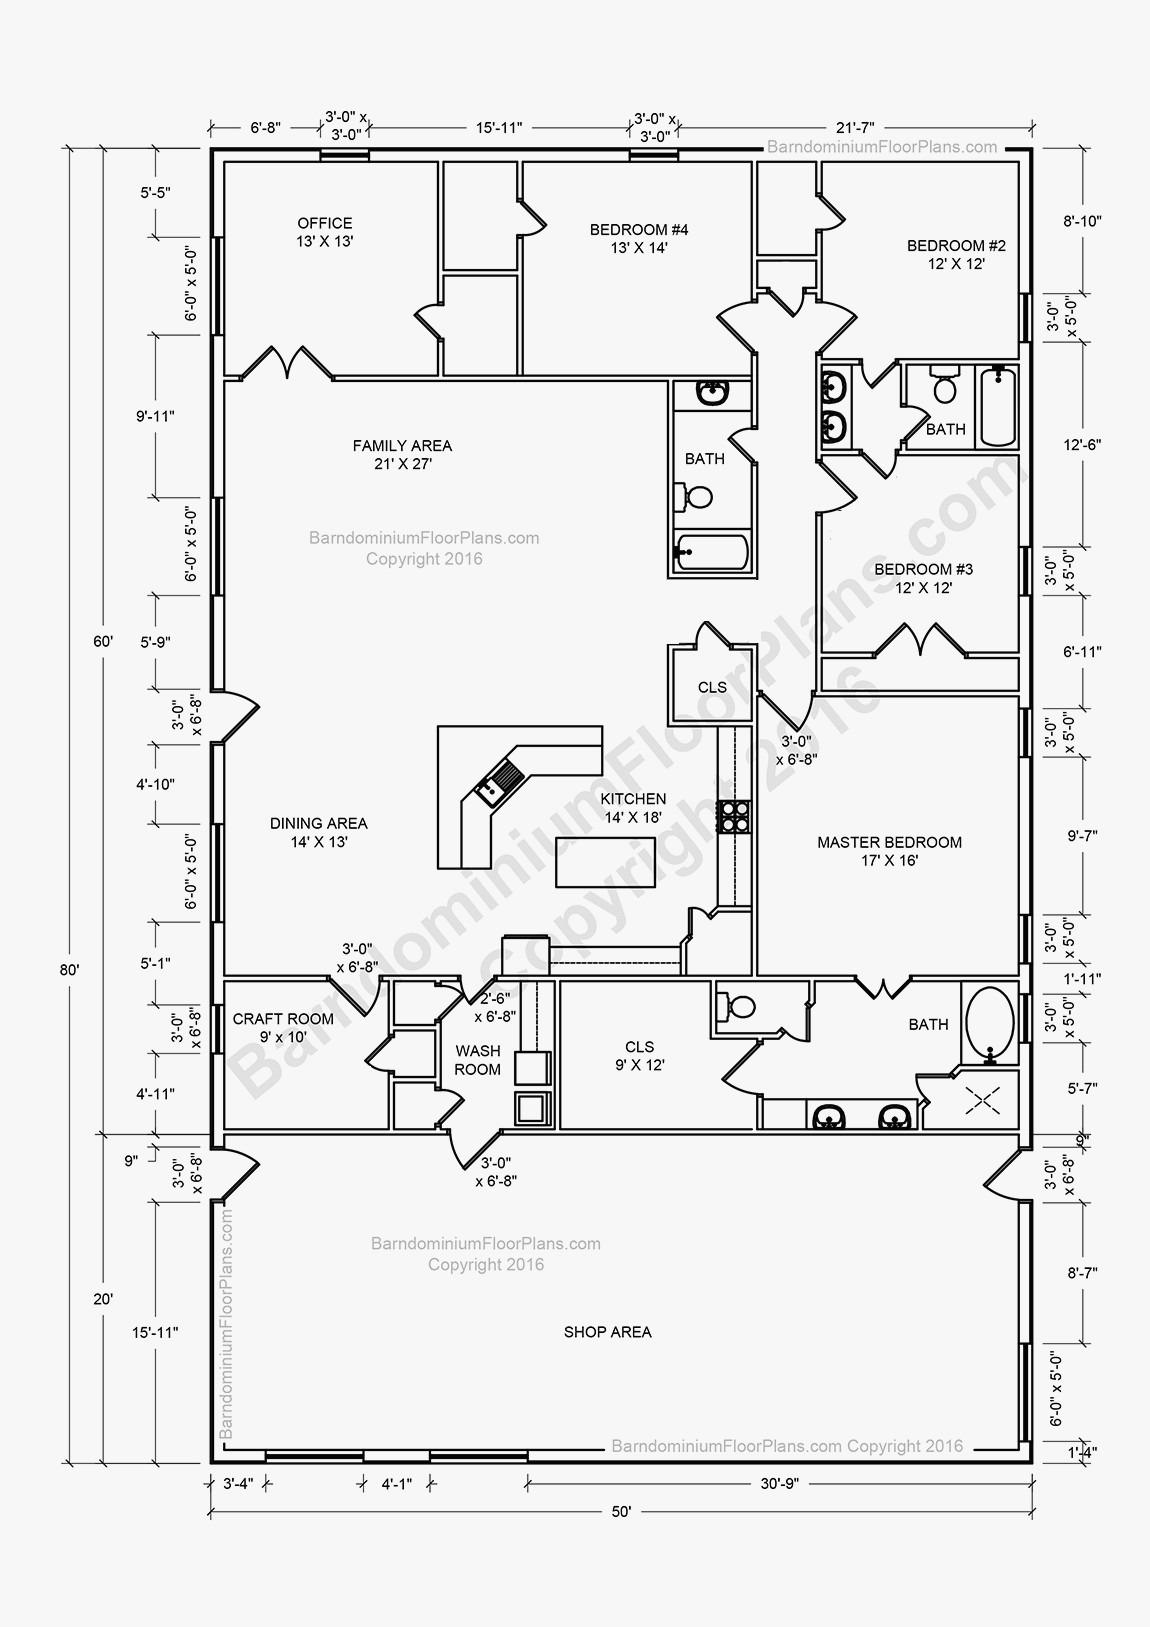 pole barn house floor plan inspirational best 25 pole barn house plans ideas on pinterest